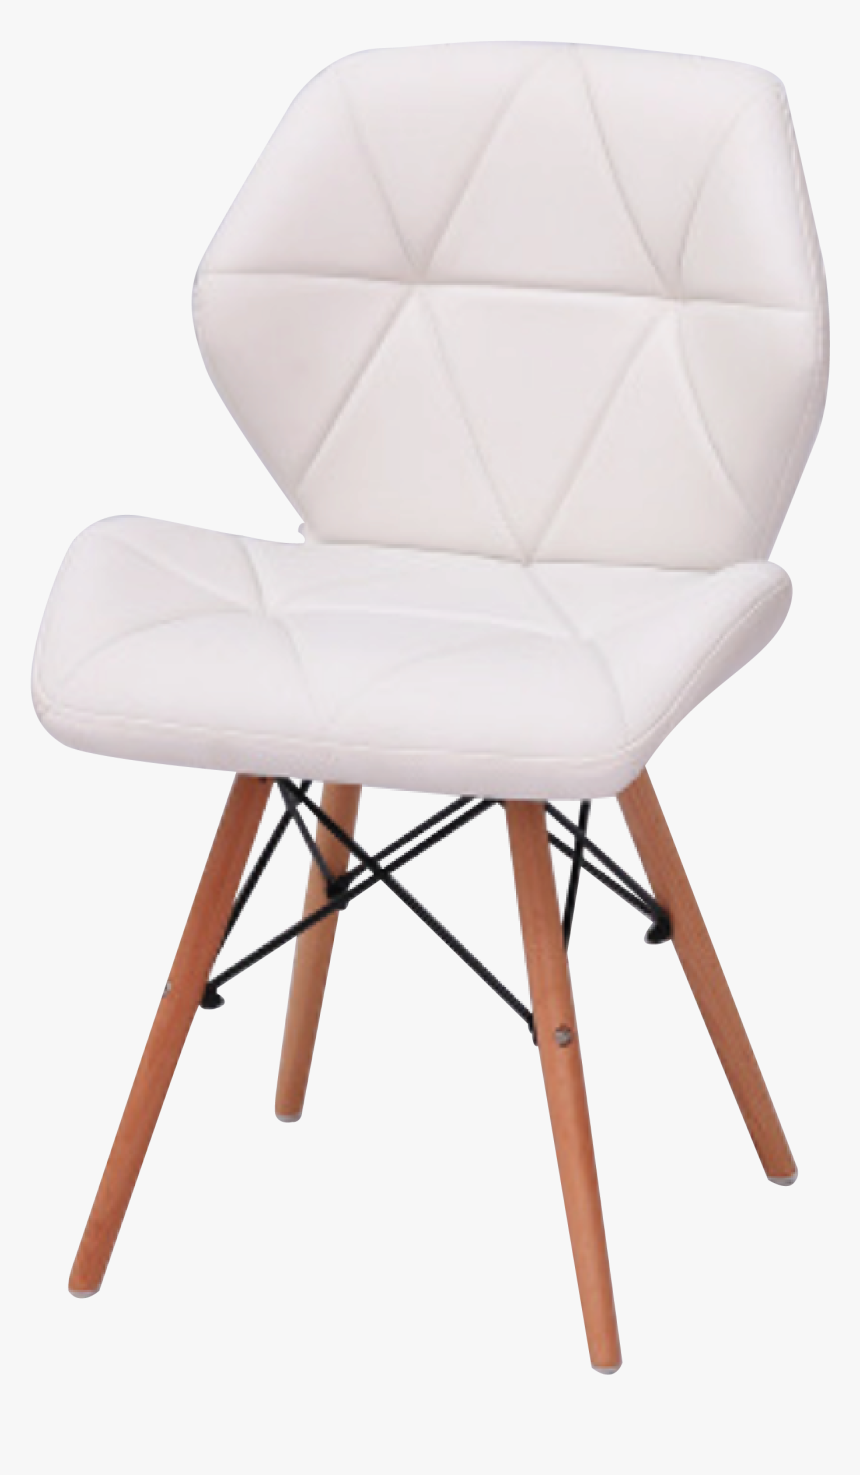 -white - Club Chair, HD Png Download, Free Download